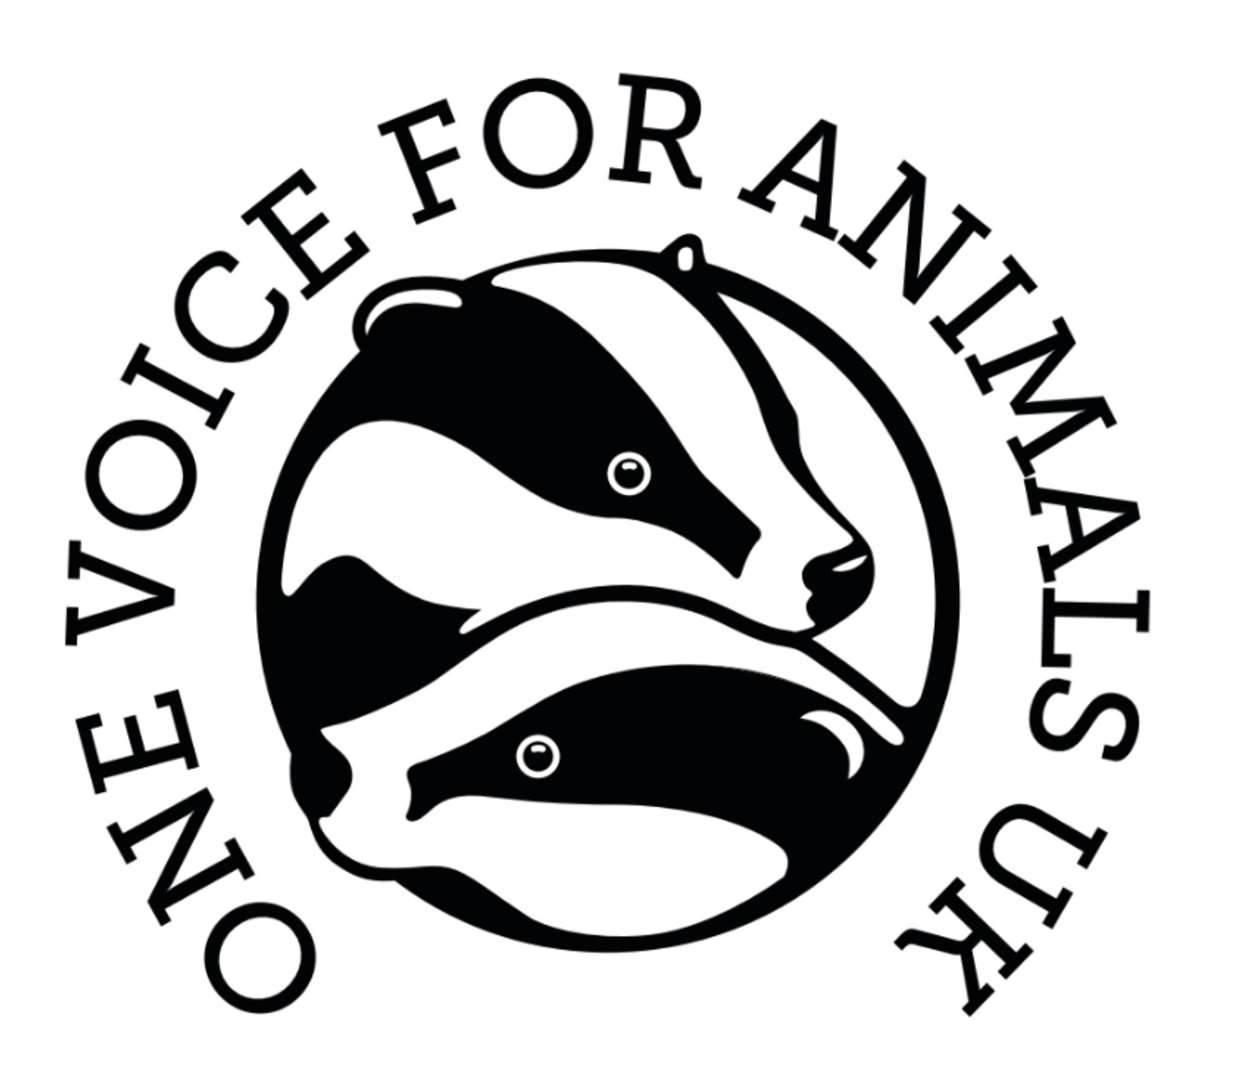 One Voice For Animals UK was set up last year. Picture: One Voice For Animals UK